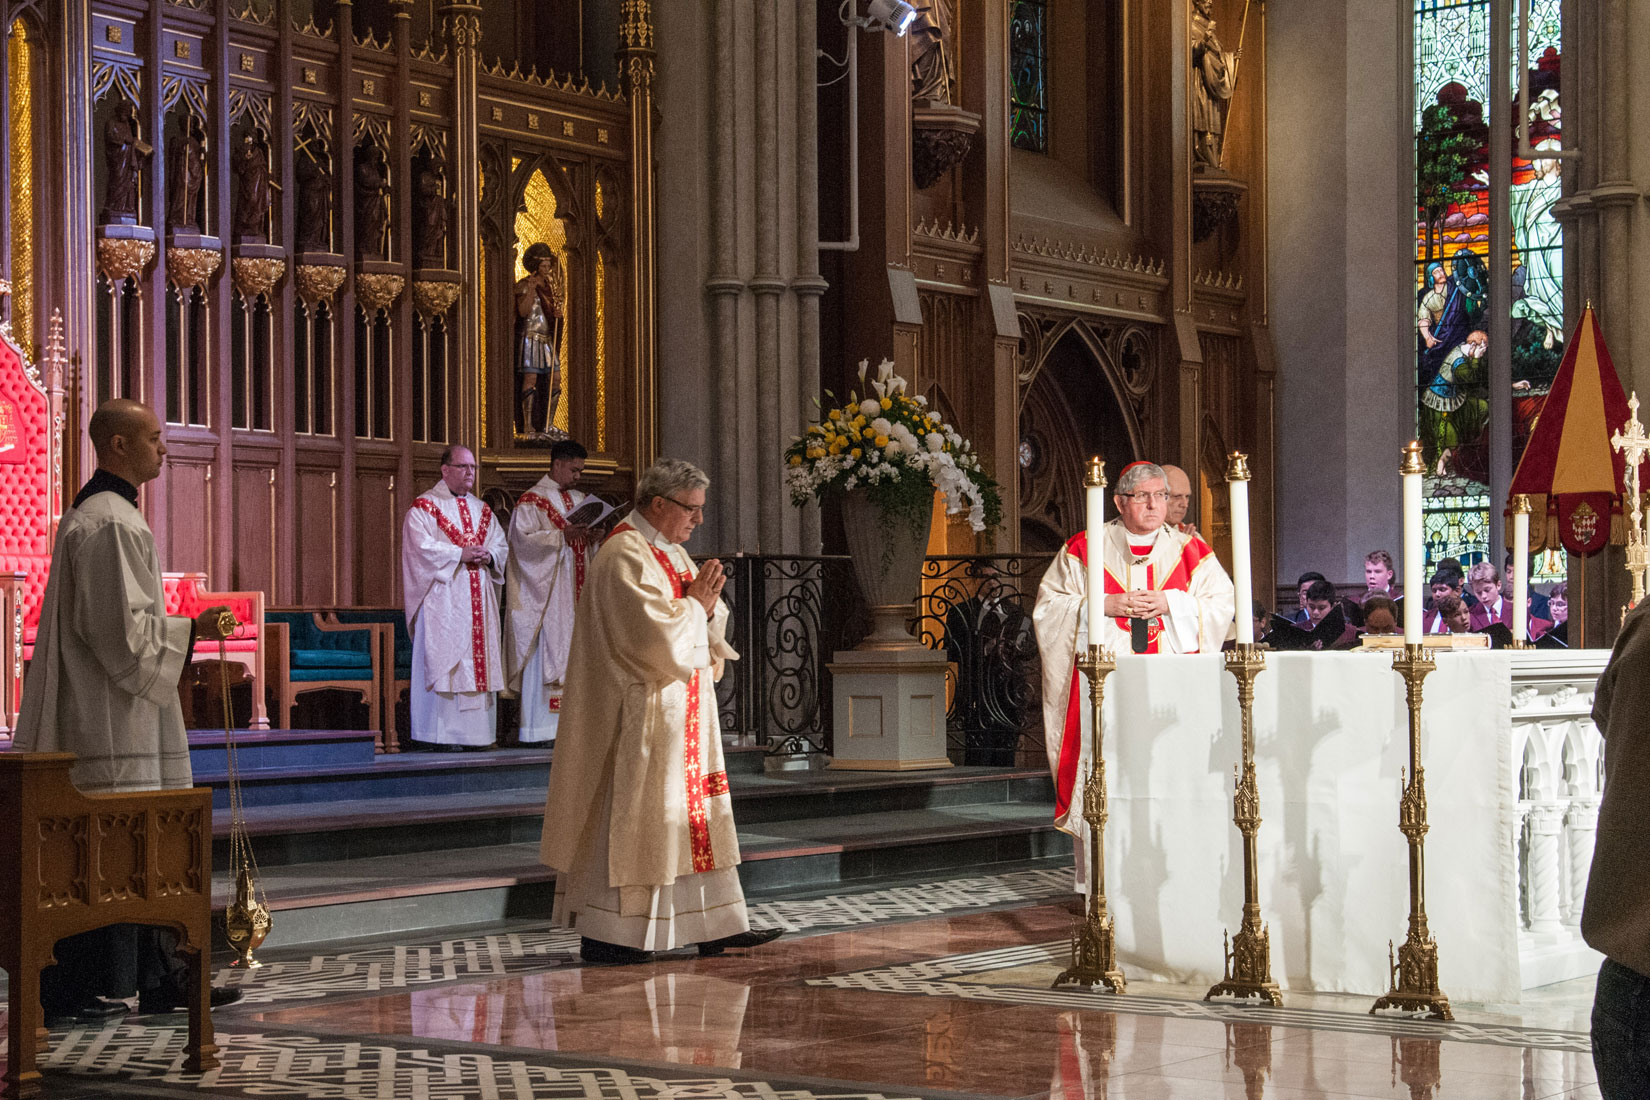 The workers' thanksgiving Mass at St. Michael's Cathedral, Sept. 30. (Photo by Michael Swan)